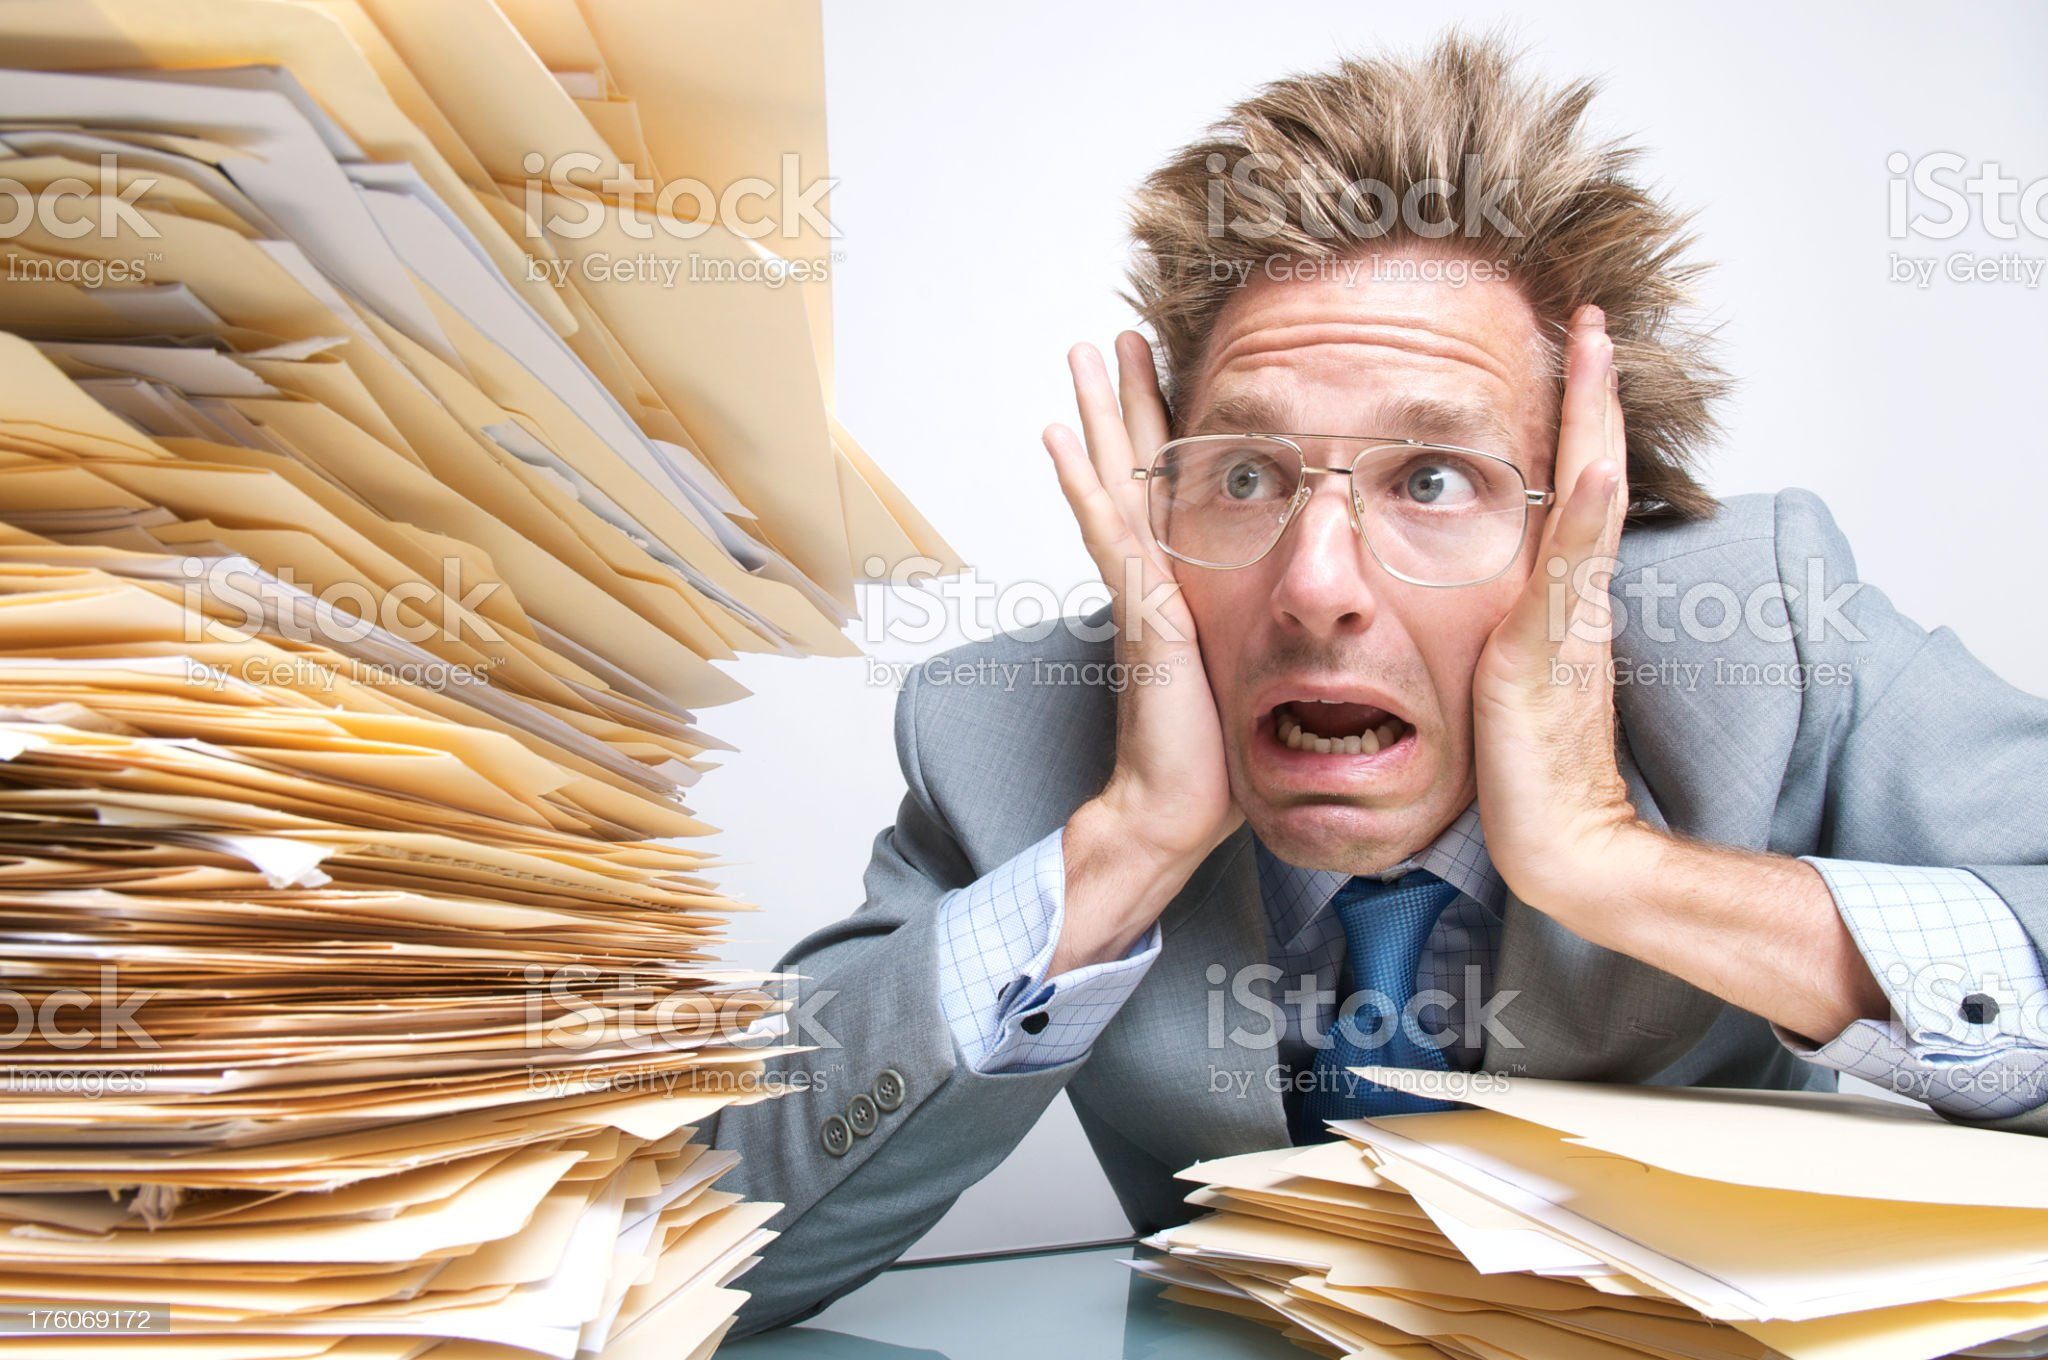 Stressed Businessman Office Worker Freaking Out Next to Paperwork Pile royalty-free stock photo